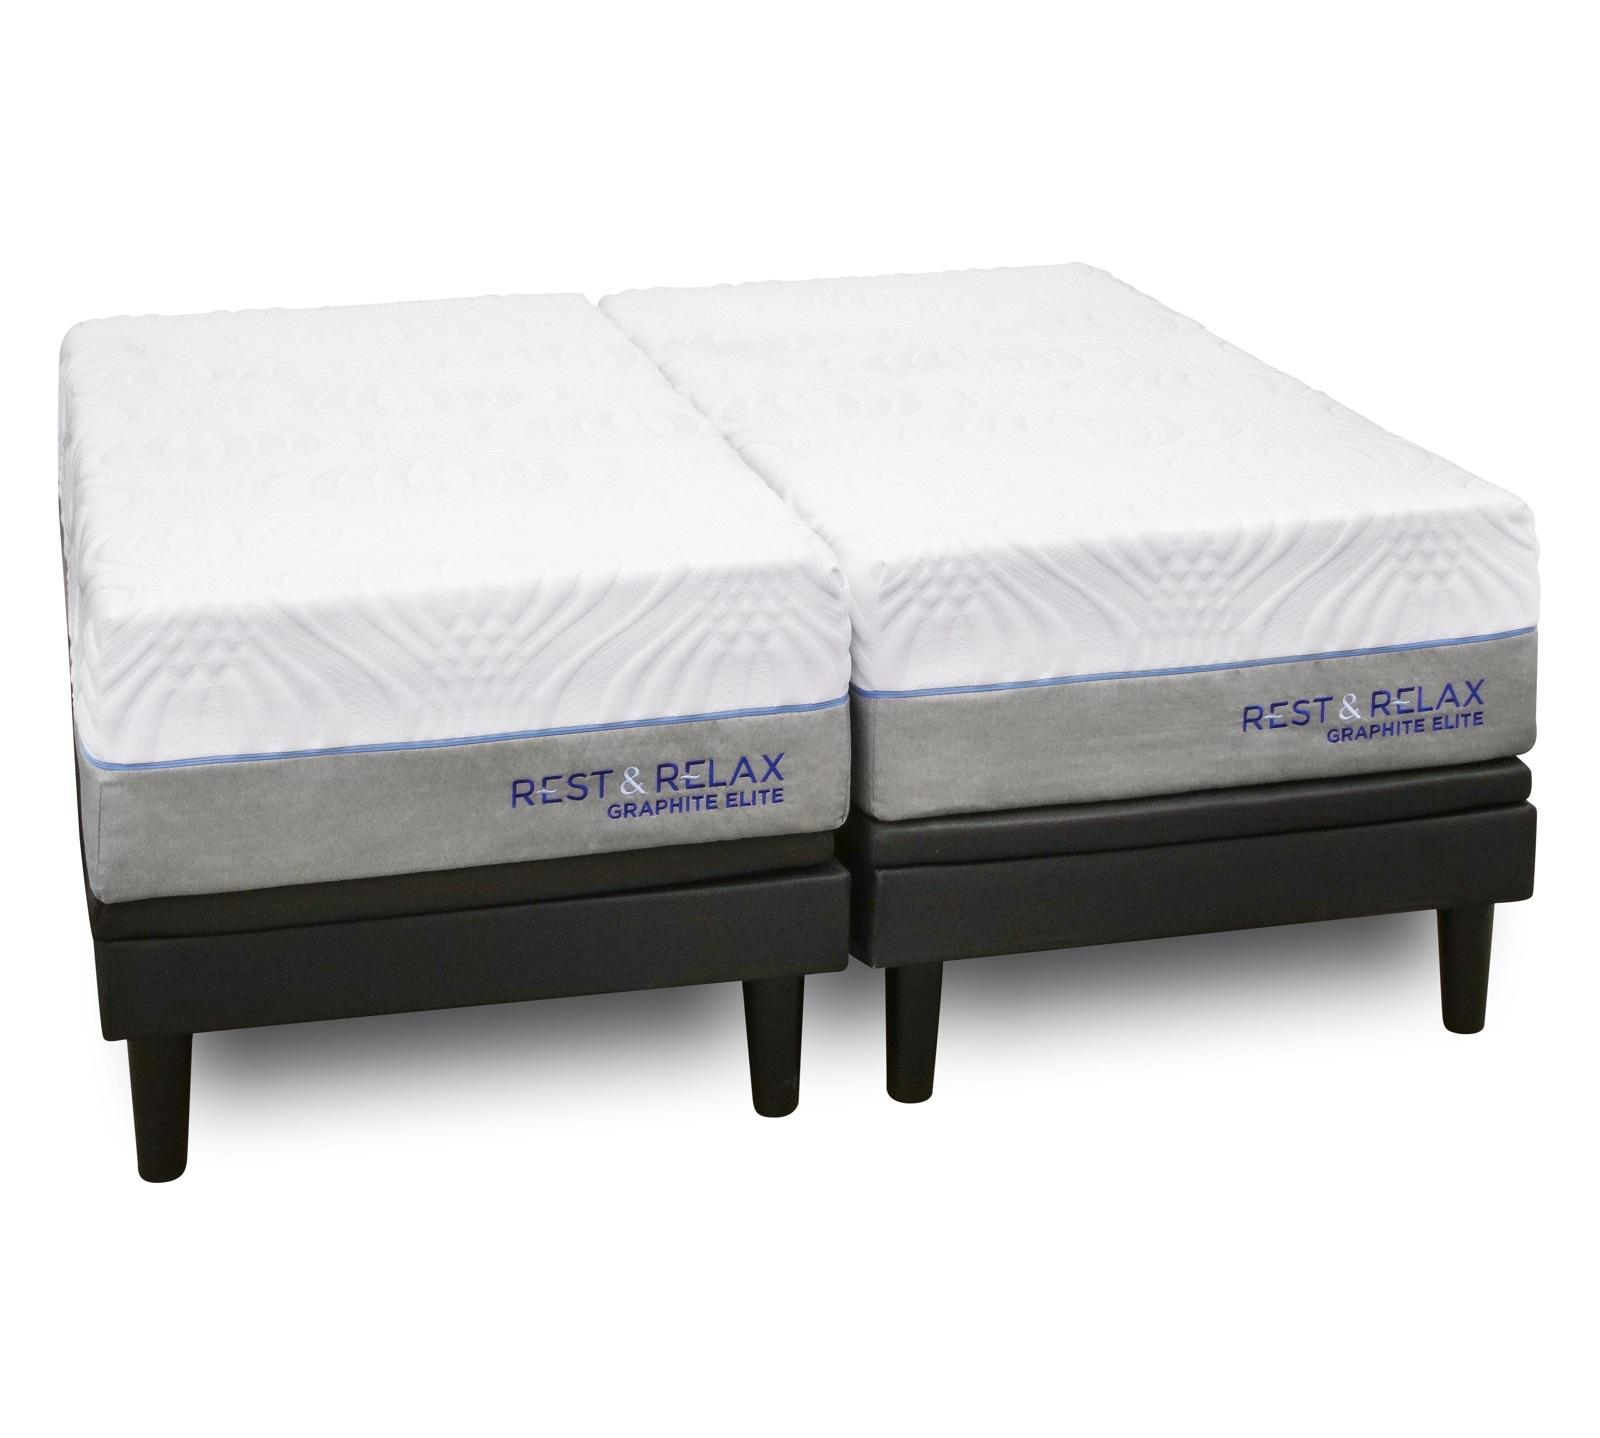 Simmons Beautyrest Jennings Sku Mfiv000097330 Graphite Elite 14 Inch Mattress From Mattress Firm